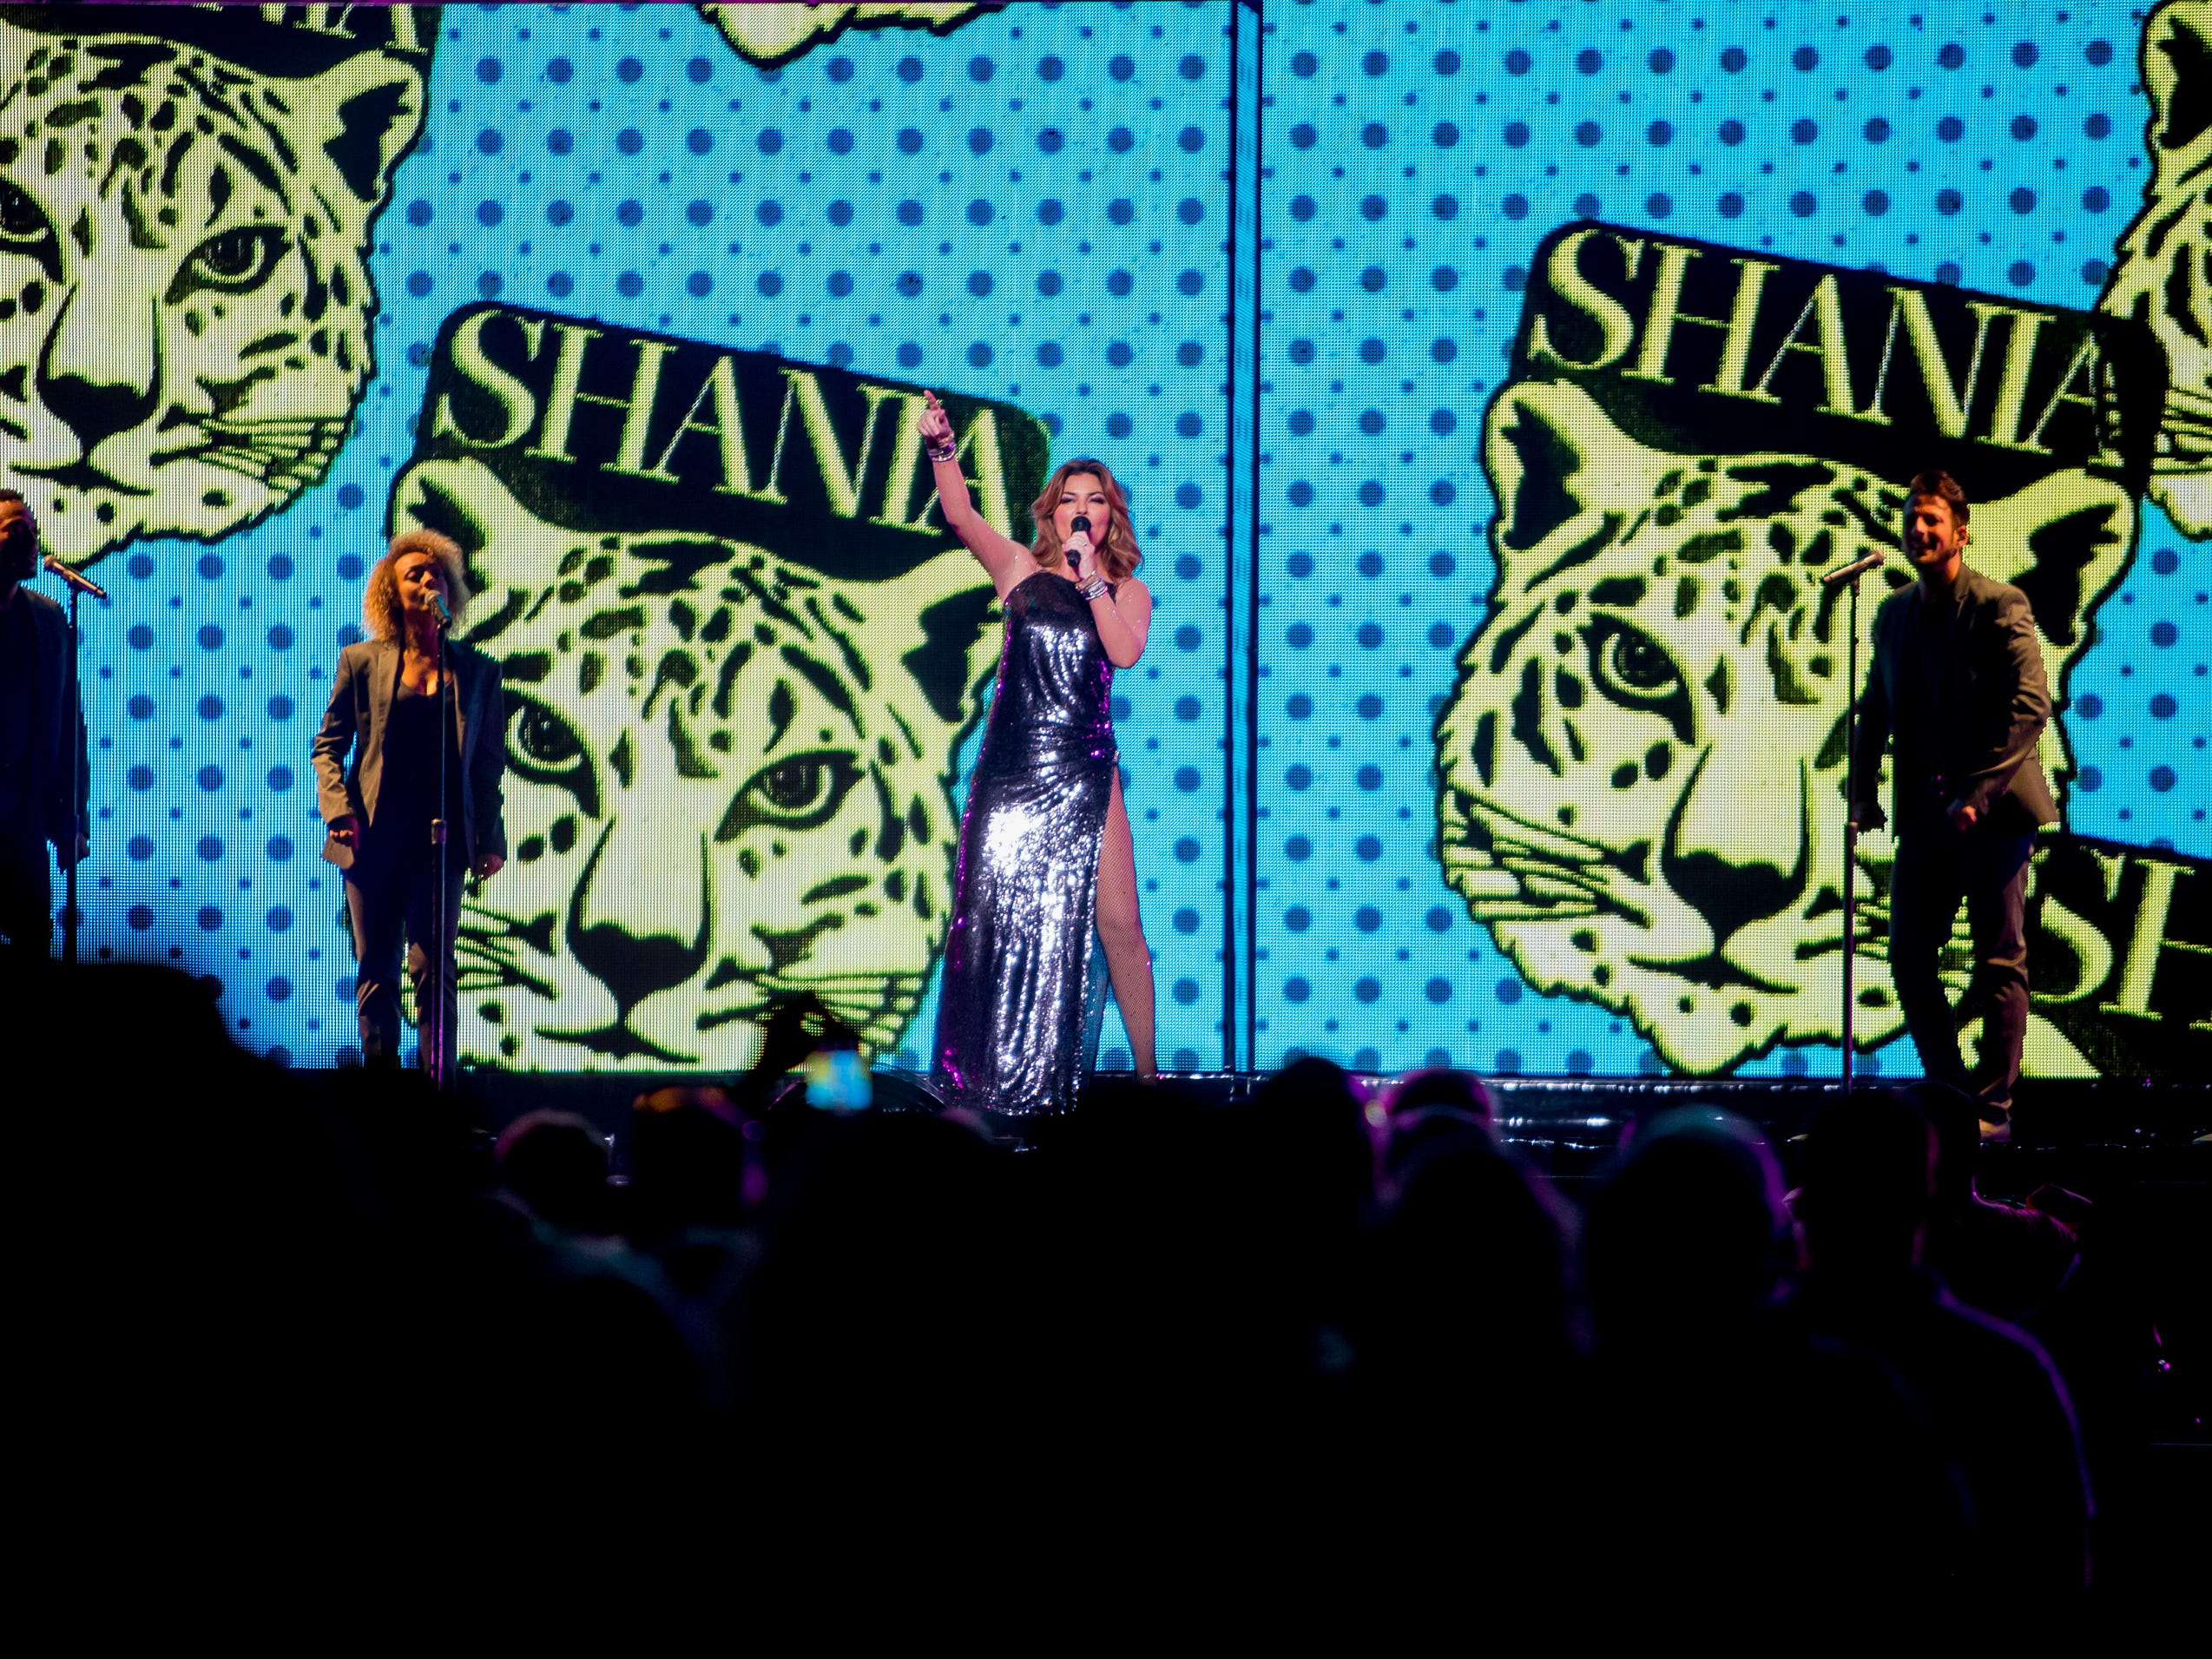 Shania Twain (center) performs on July 30, 2018, during the Shania Twain: NOW concert at Talking Stick Resort Arena in Phoenix, Arizona.